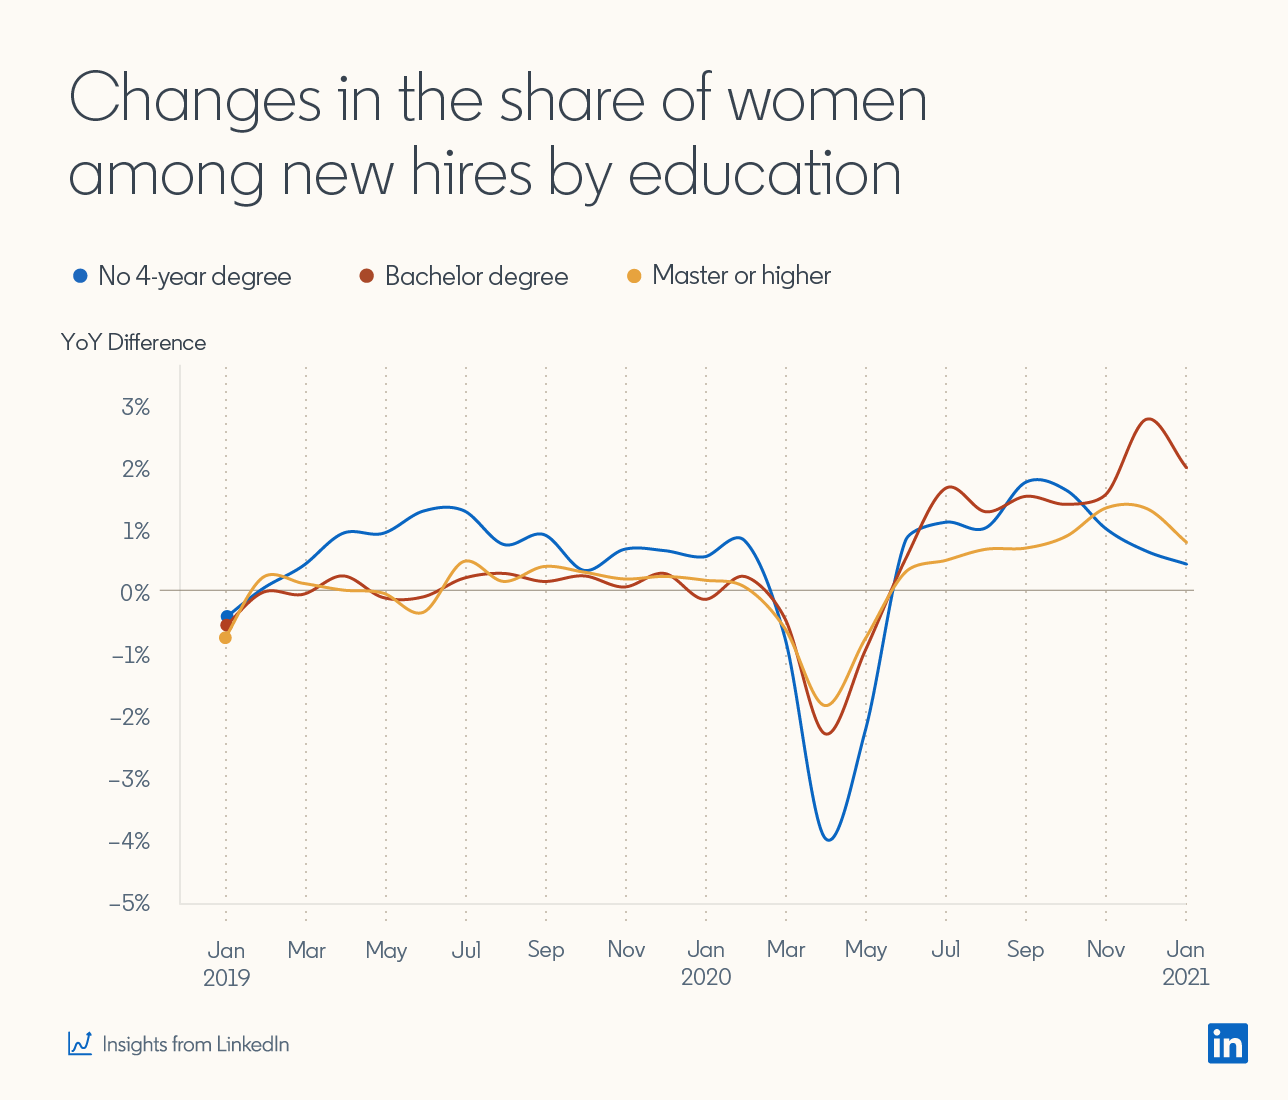 Line graph showing:  Changes in the share of women among new hires by education (No 4-year degree, bachelor degree, and master or higher degree).  Graph shows dip in all education levels between March and April 2020, but the dip is less pronounced for women with bachelor or higher degree.